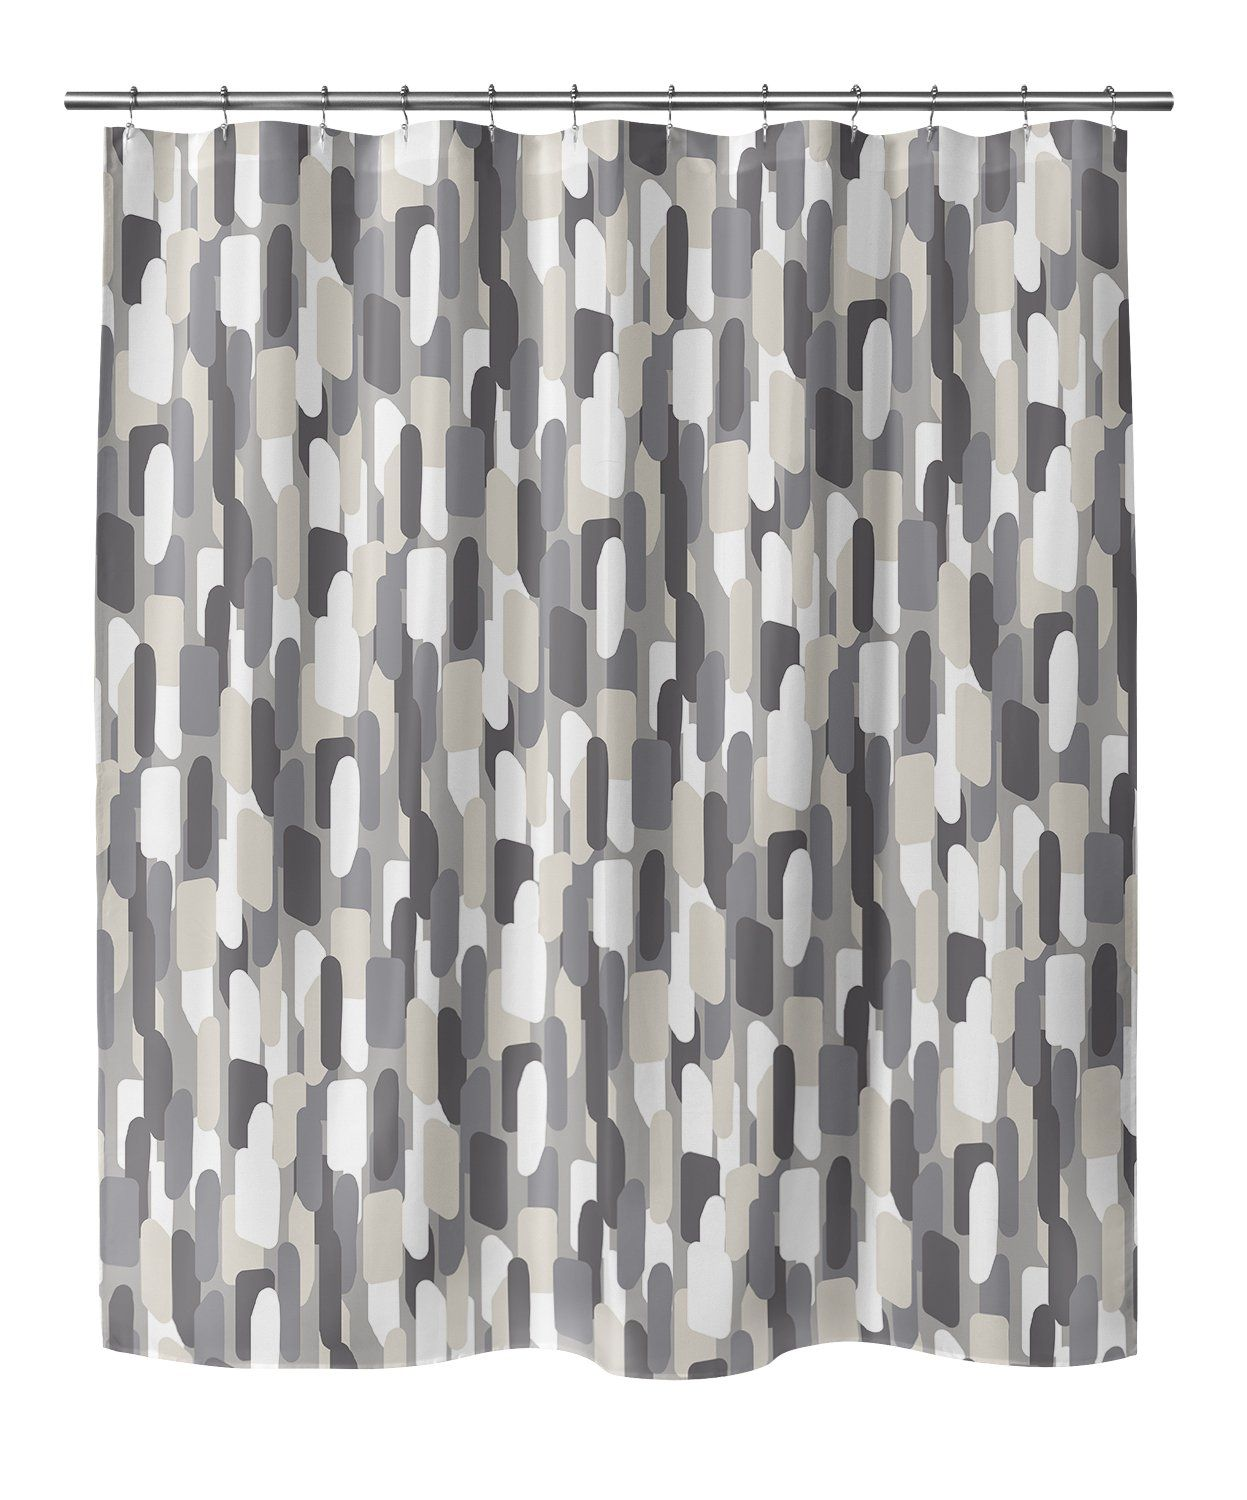 Photo of NEVALI V LIGHT GRAY Shower Curtain By Marina Gutierrez – 70in x 72in